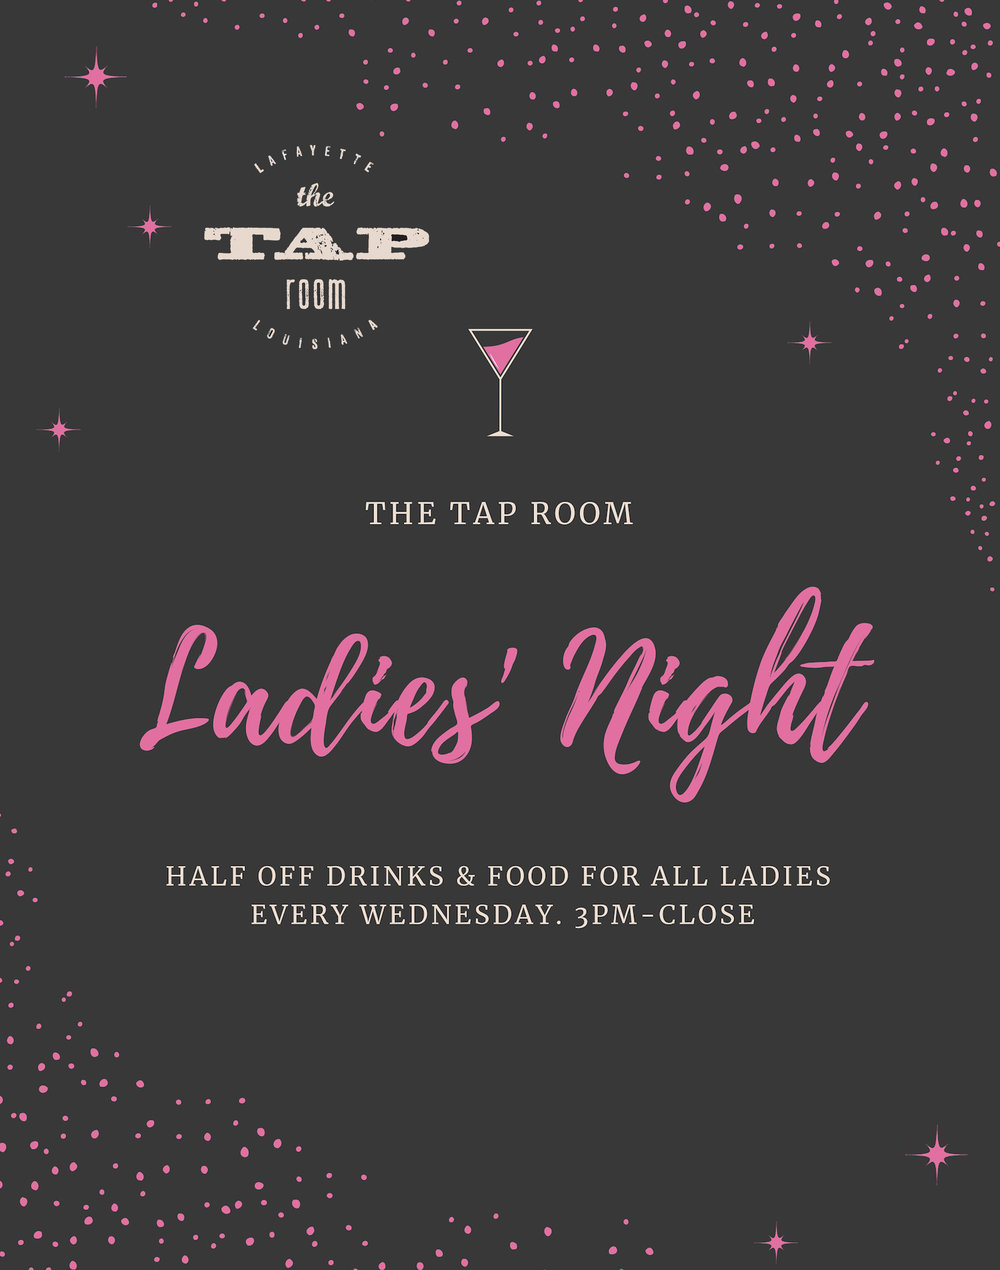 ladies night tap room copy.jpg